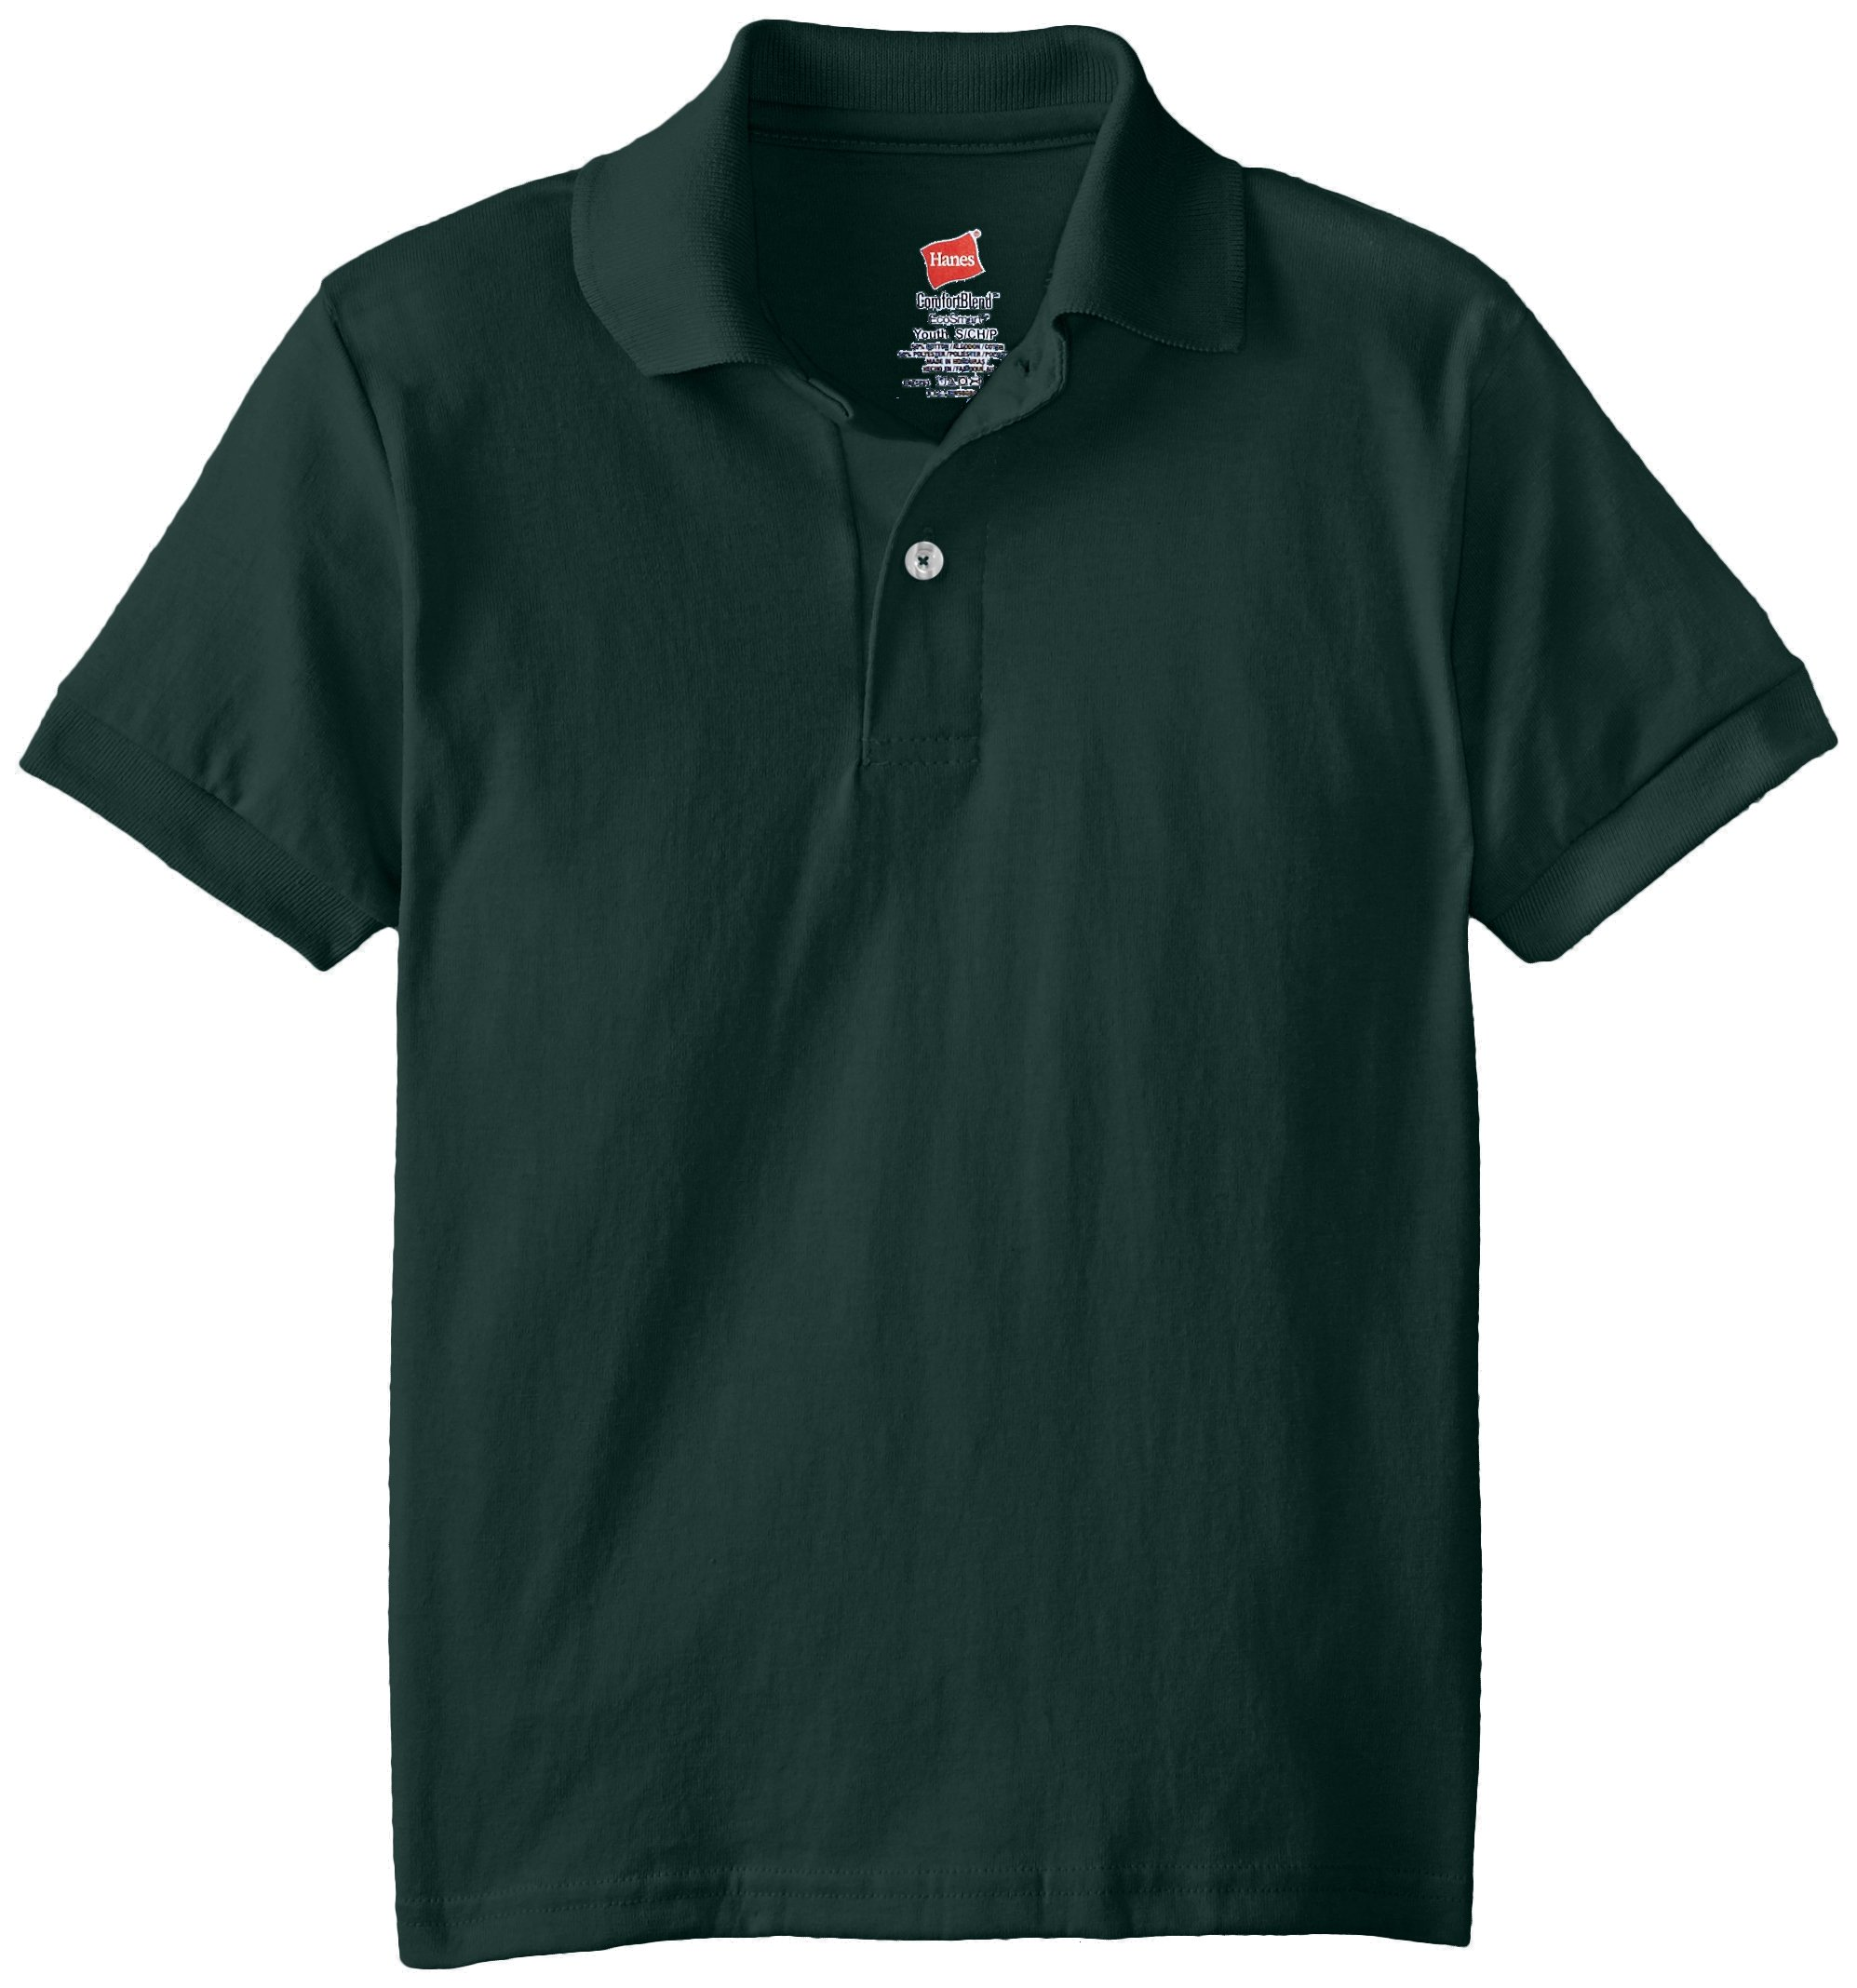 Hanes Little Boys' Short Sleeve Eco Smart Jersey Polo, Deep Forest, x Small